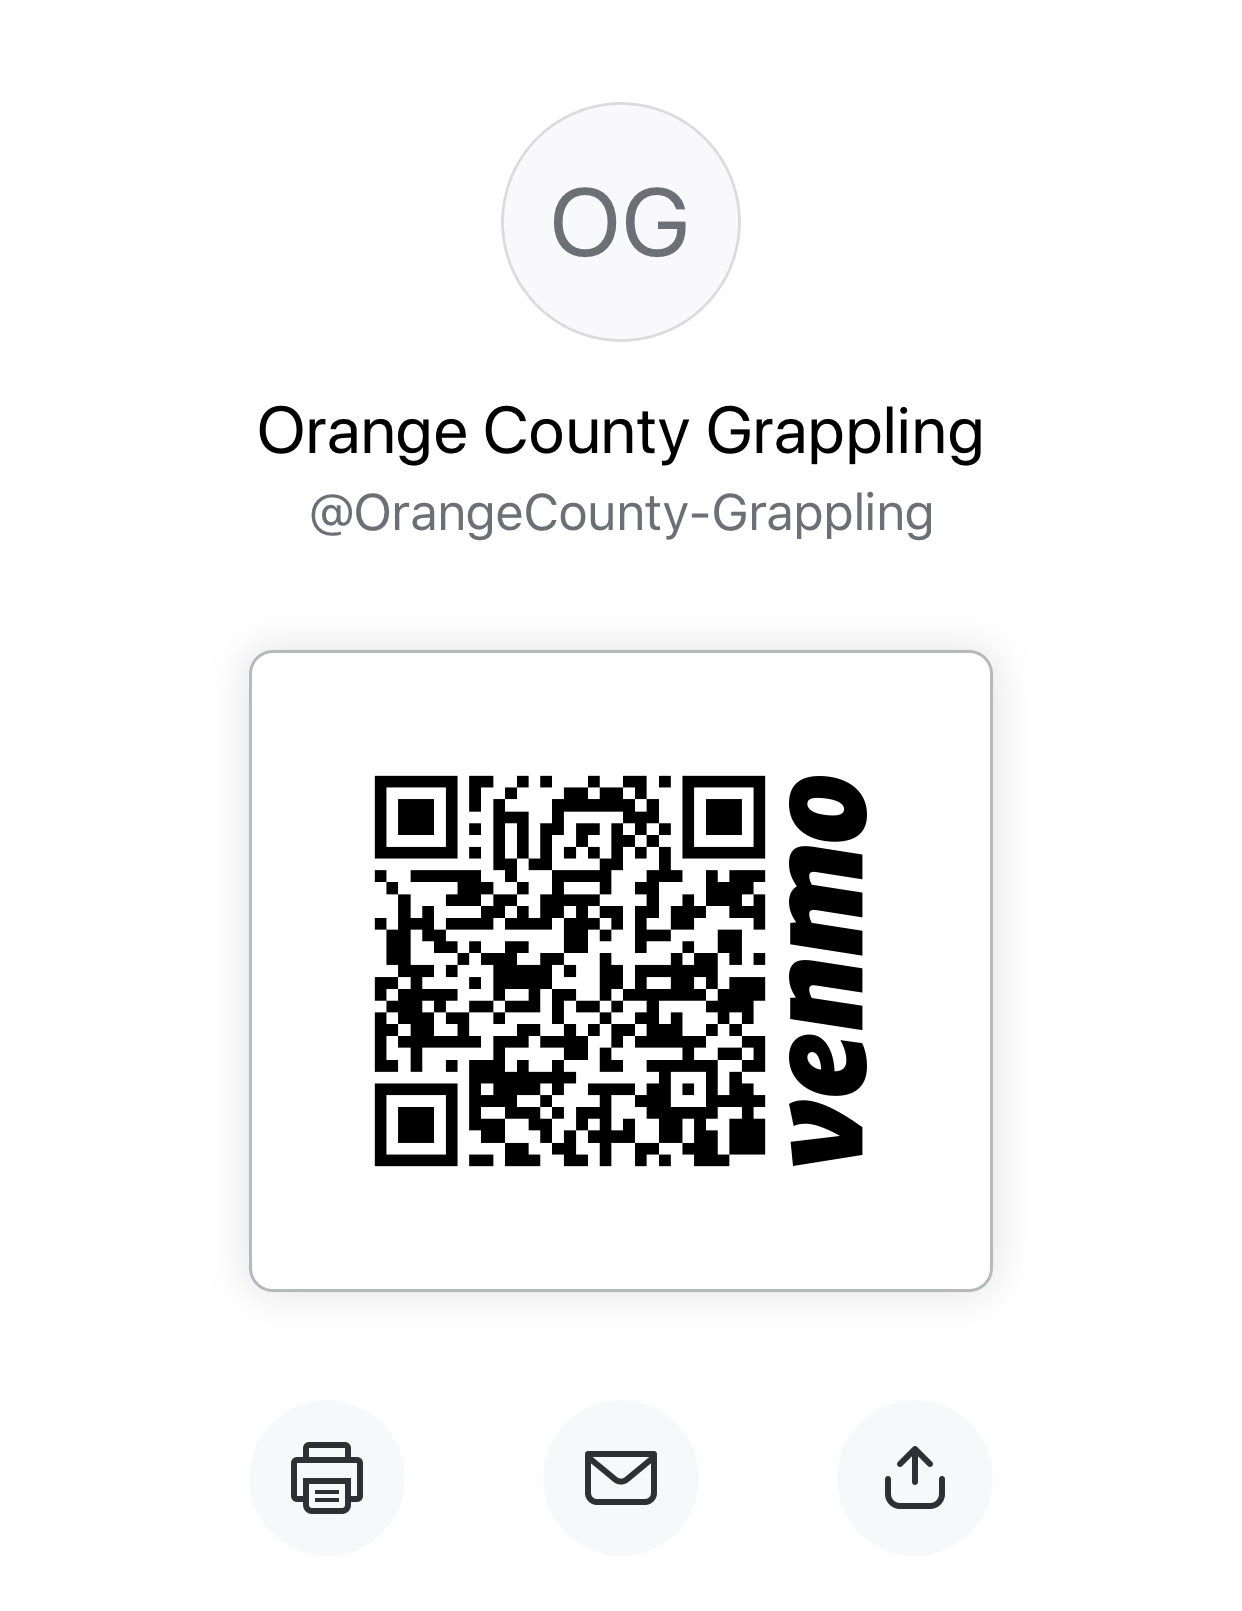 USE THIS QR CODE FOR VENMO PAYMENT PURPOSES PLEASE.